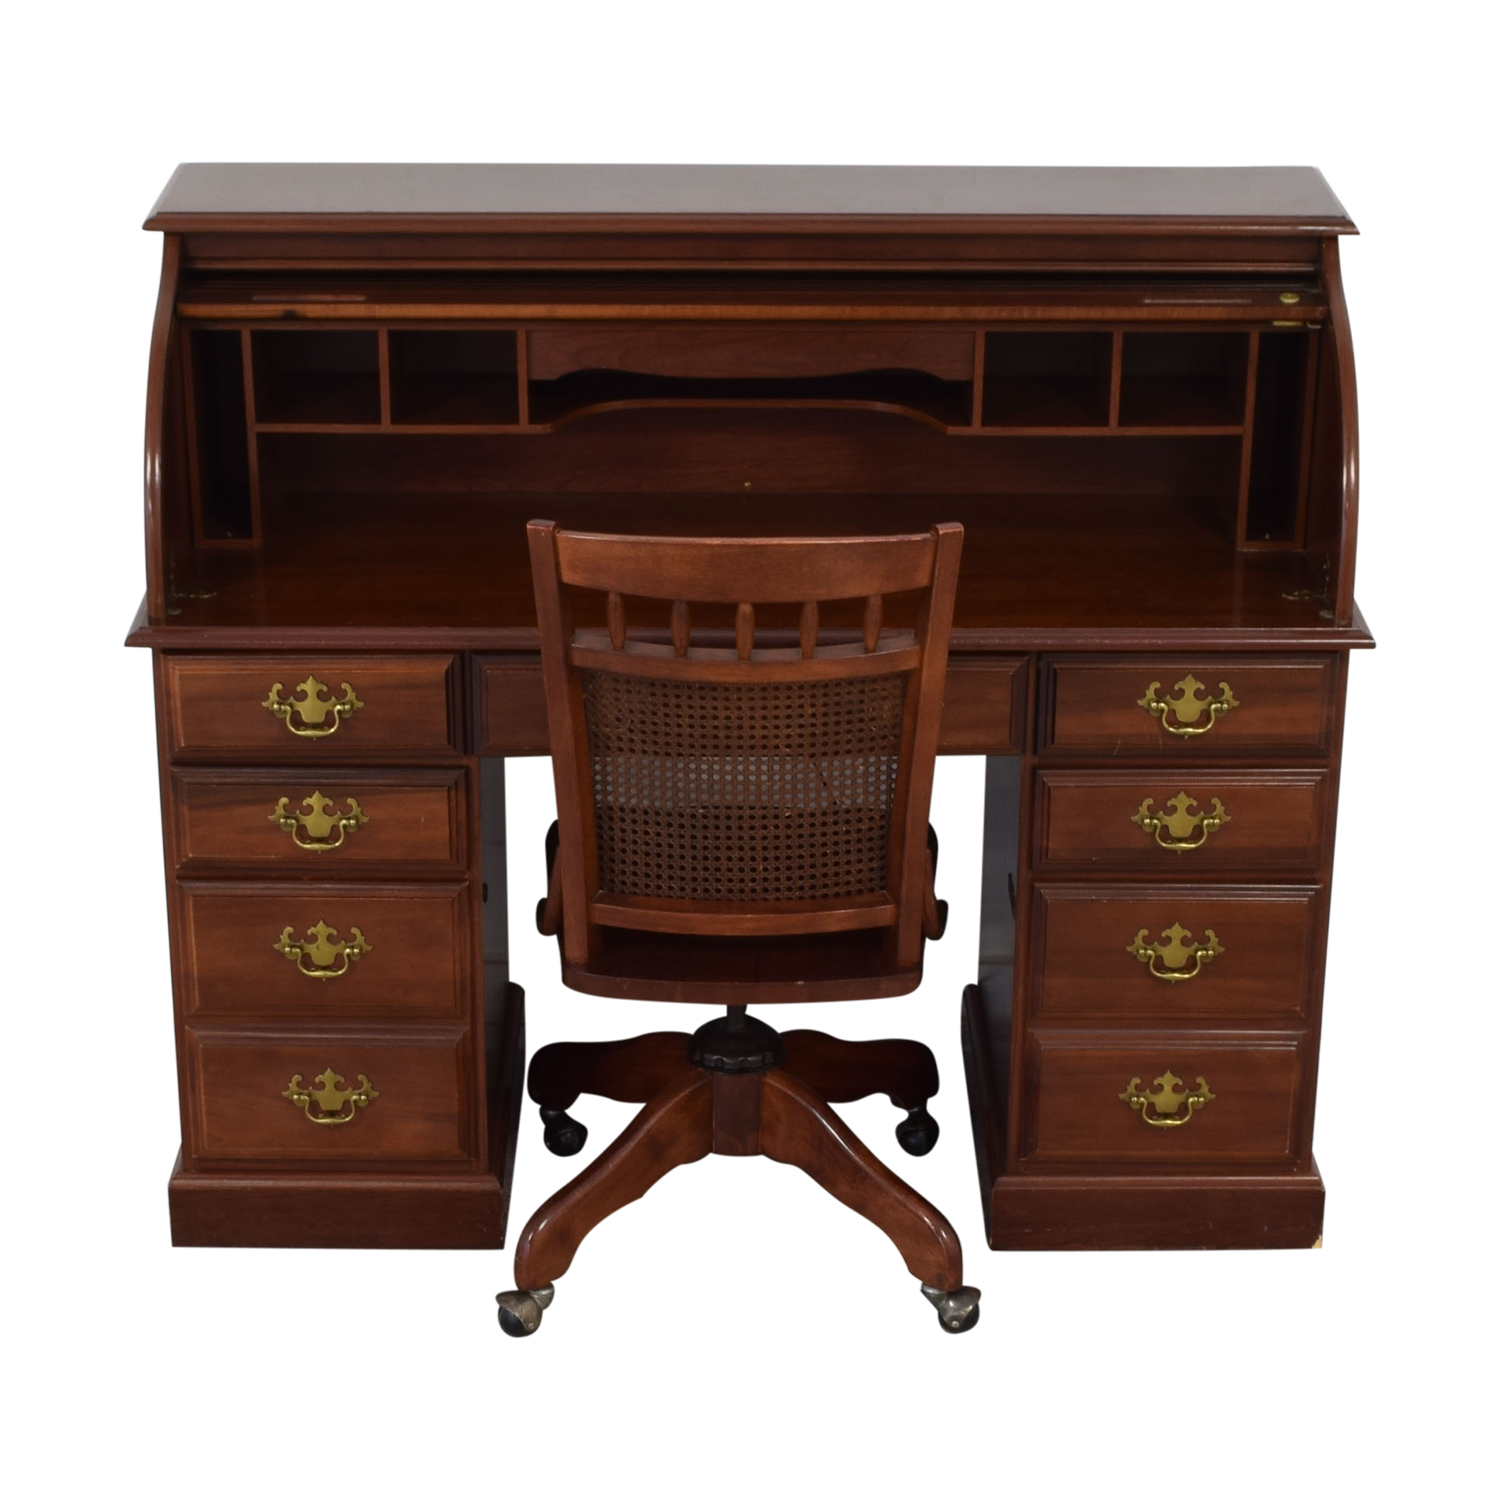 shop  Roll Top Desk with Chair online